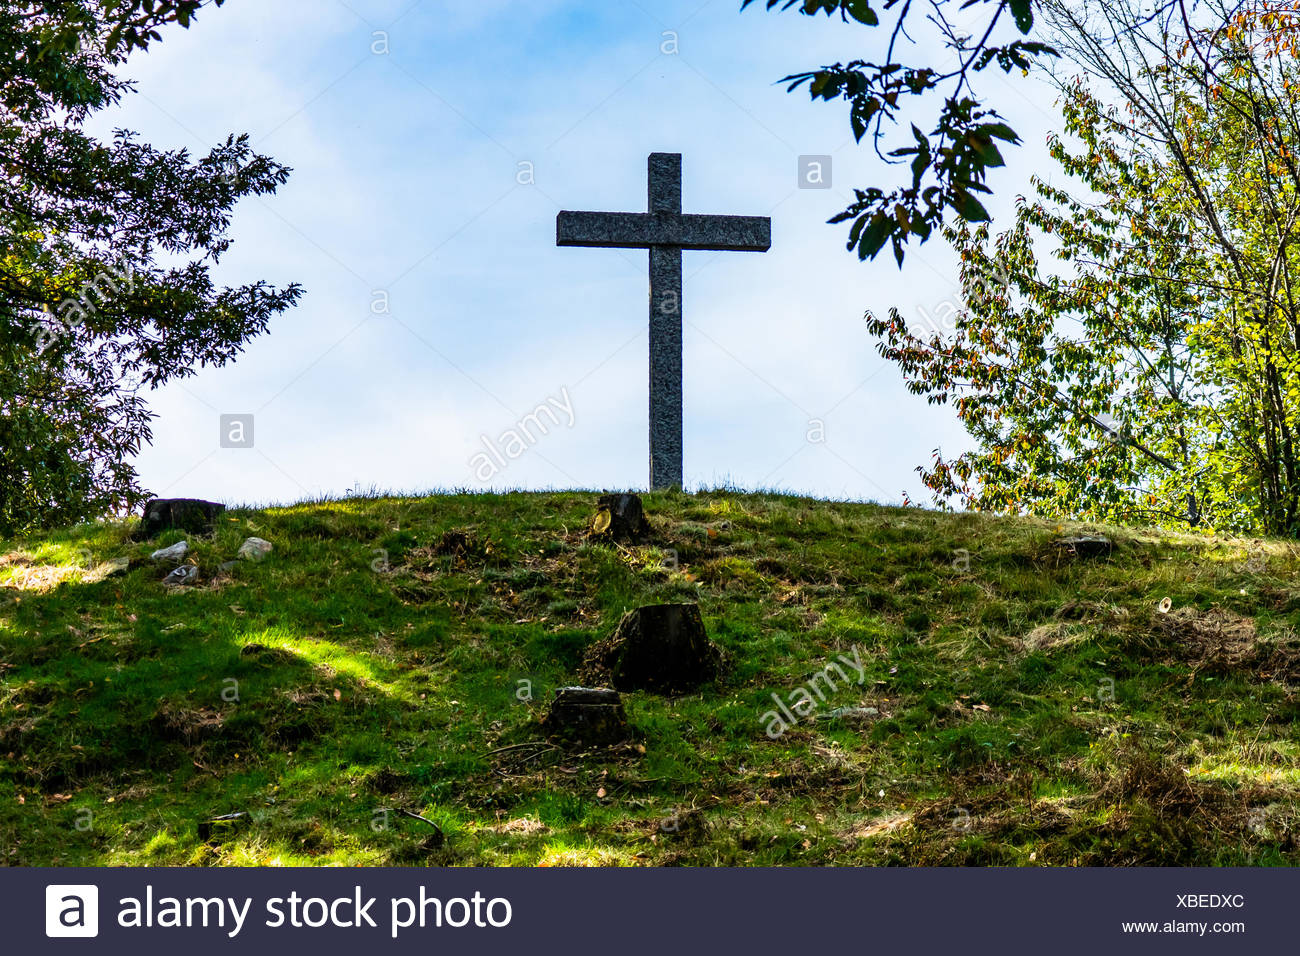 Low Angle View Of Cross On Field Against Sky - Stock Image